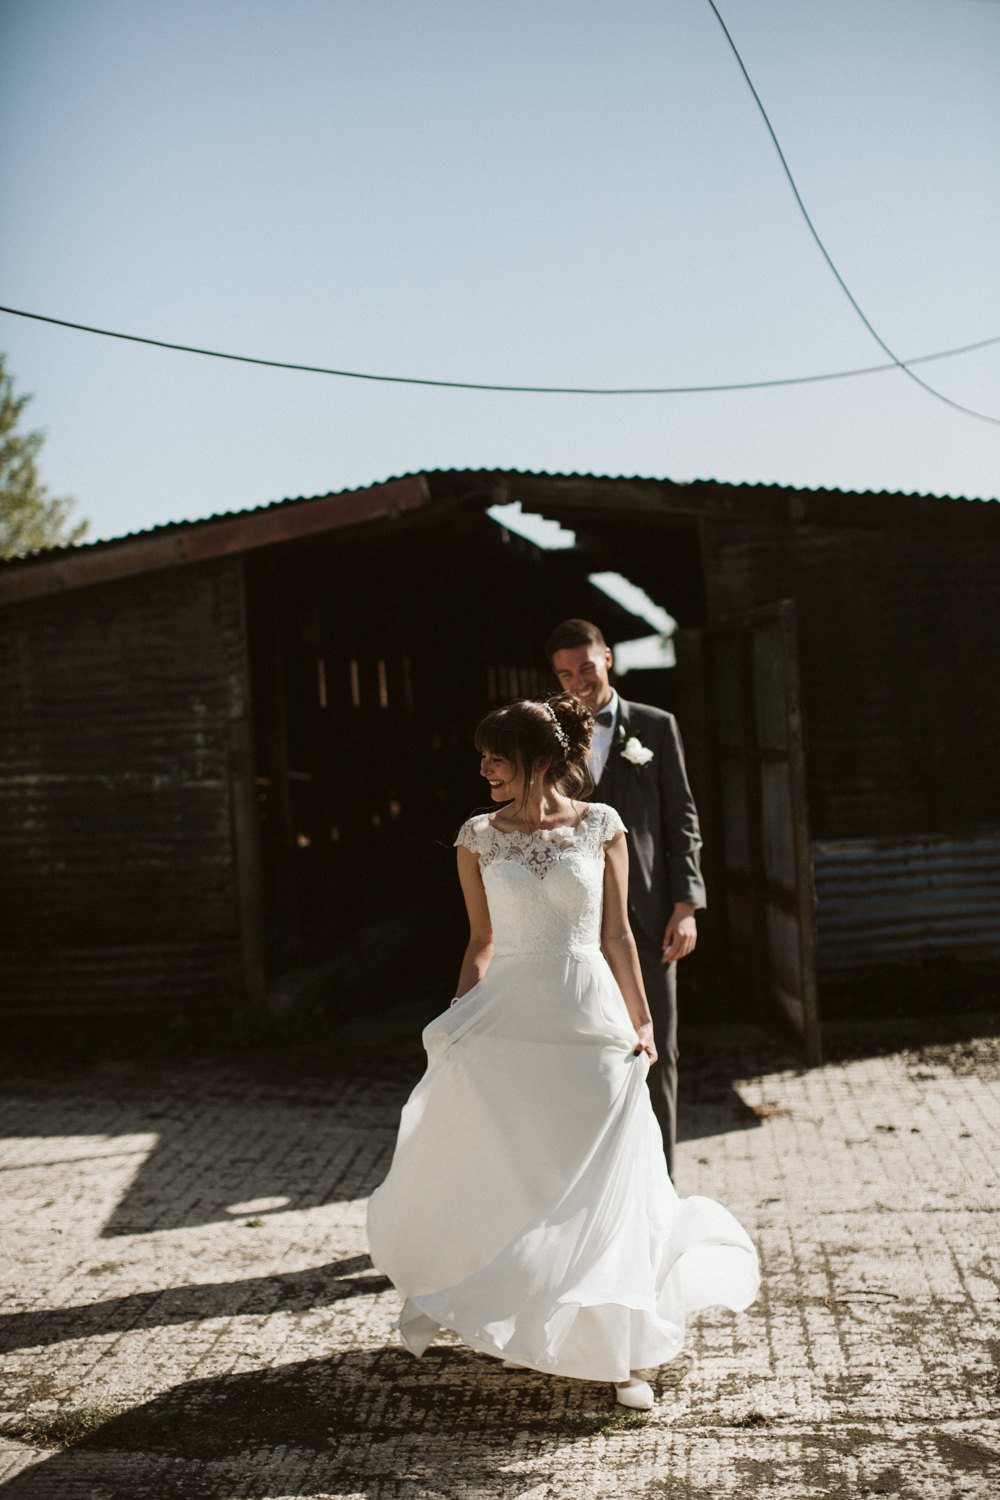 Travel Wine Inspired Rustic Outdoor Natural Farm Field Countryside Bride Groom Abandoned Dairy Farm Quirky Portraits | Farbridge Barn Wedding Jamie Dunn Photography